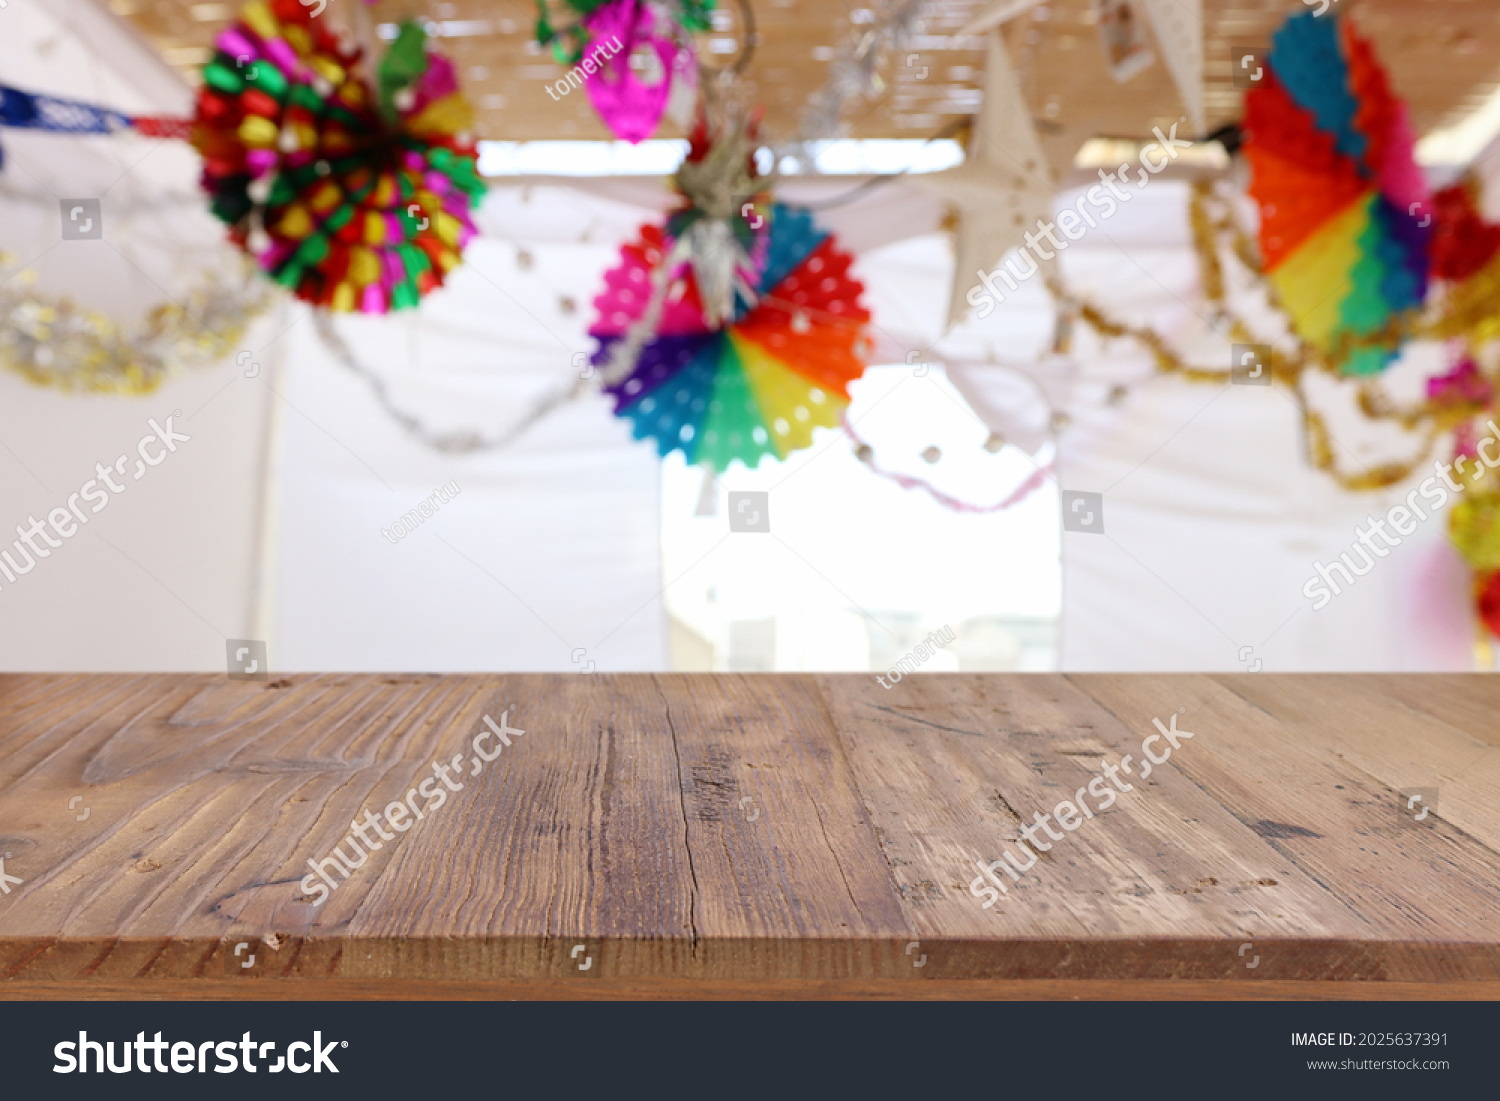 Jewish festival of Sukkot. Traditional succah (hut) with decorations. Empty wooden old table for product display and presentation. #2025637391